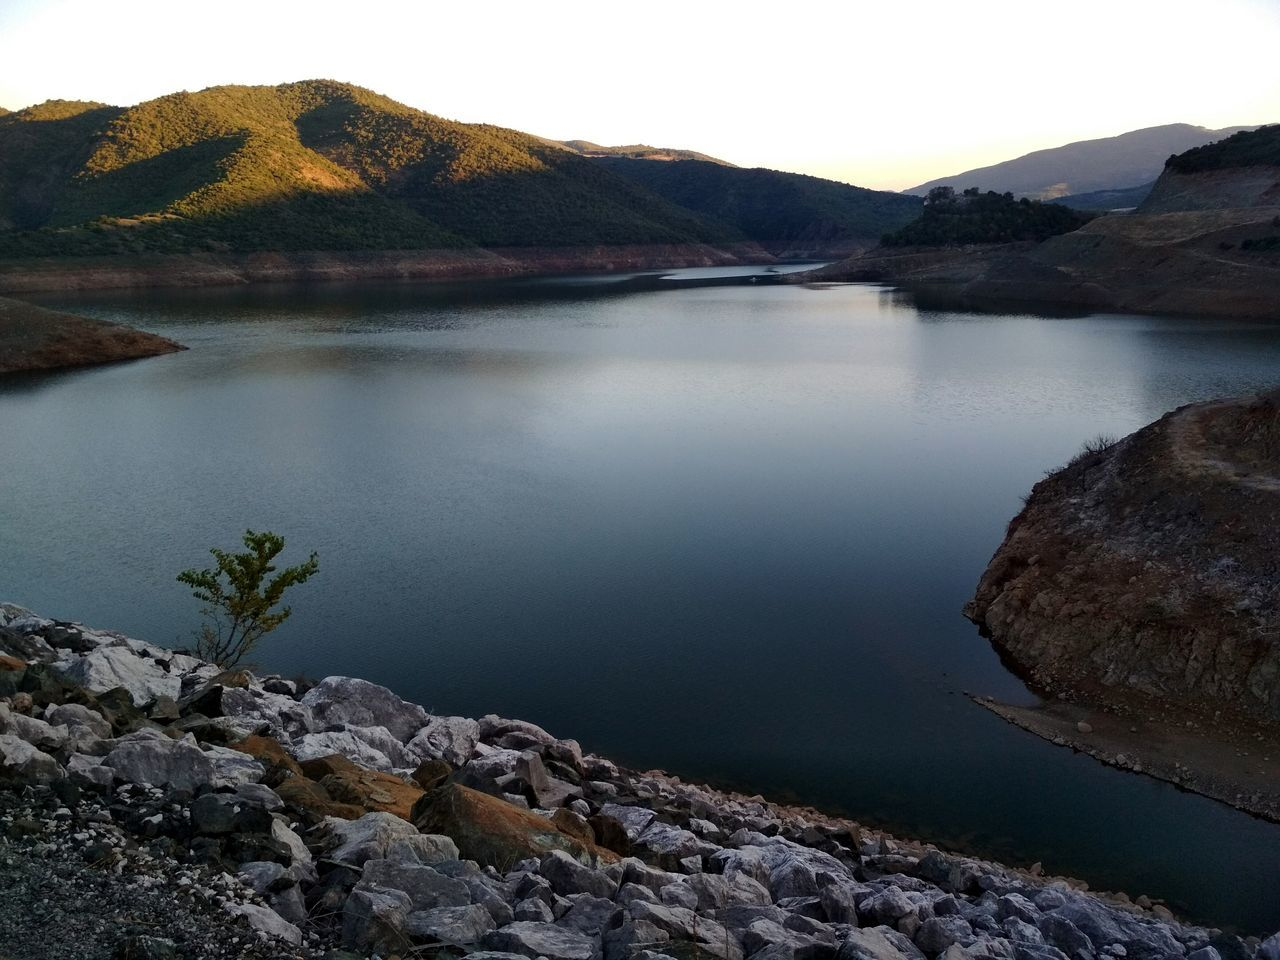 Lake Reflection Water Nature Mountain Beauty In Nature Outdoors GREECE ♥♥ Smokovo Lost In The Landscape Perspectives On Nature